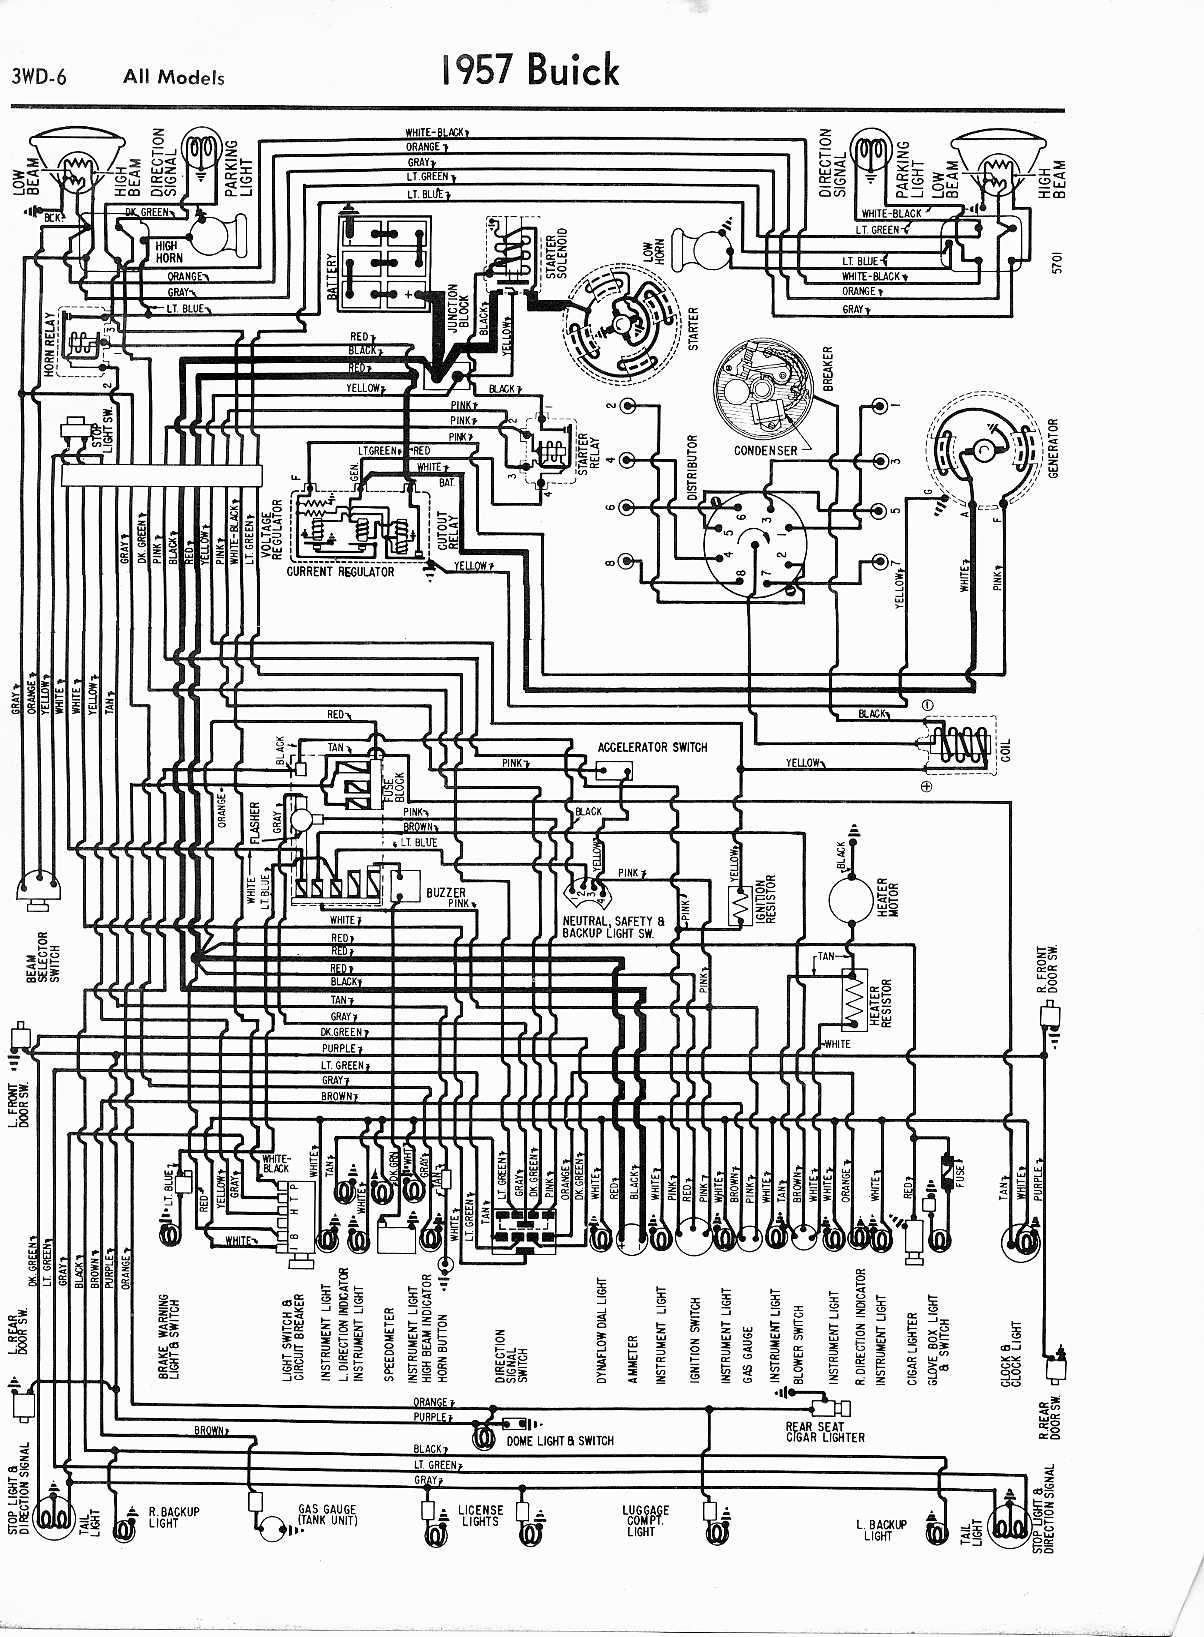 hight resolution of buick wiring diagrams 1957 1965 ceiling fan wiring schematic buick wiring schematics